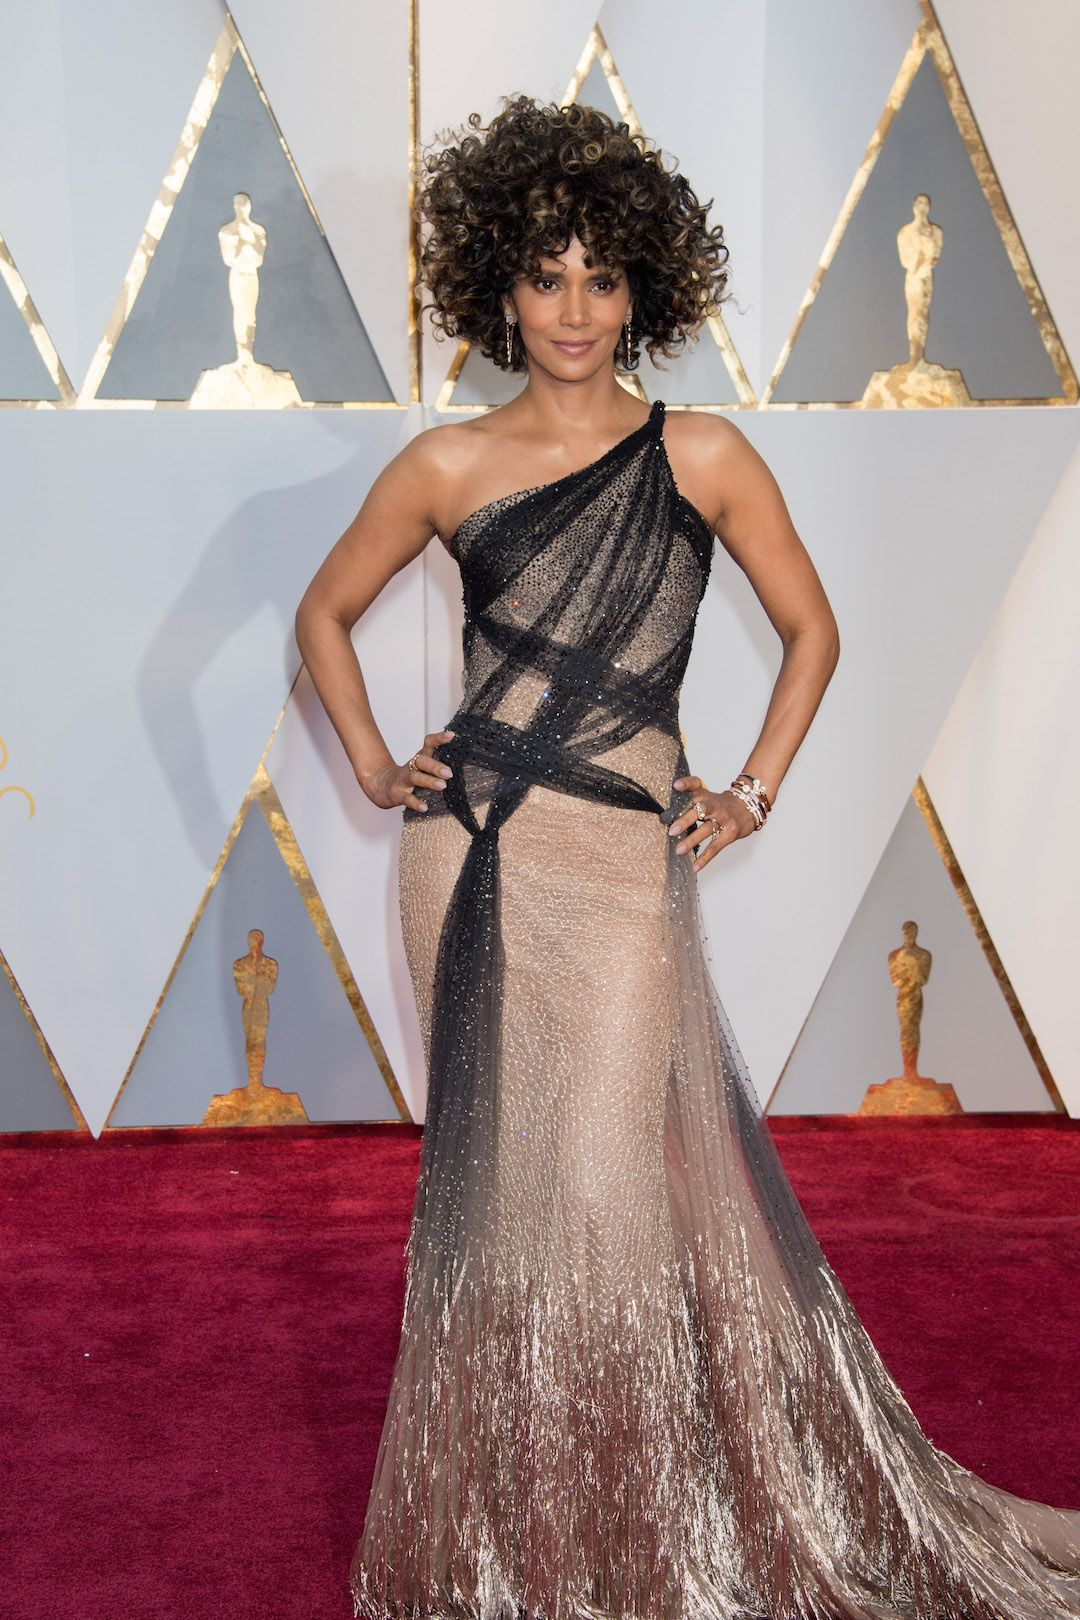 Halle Berry, presenter, arrives on the red carpet of The 89th Oscars® at the Dolby® Theatre in Hollywood, CA on Sunday, February 26, 2017. #fashion #beauty #Oscars #redcarpet #4ChionStyle